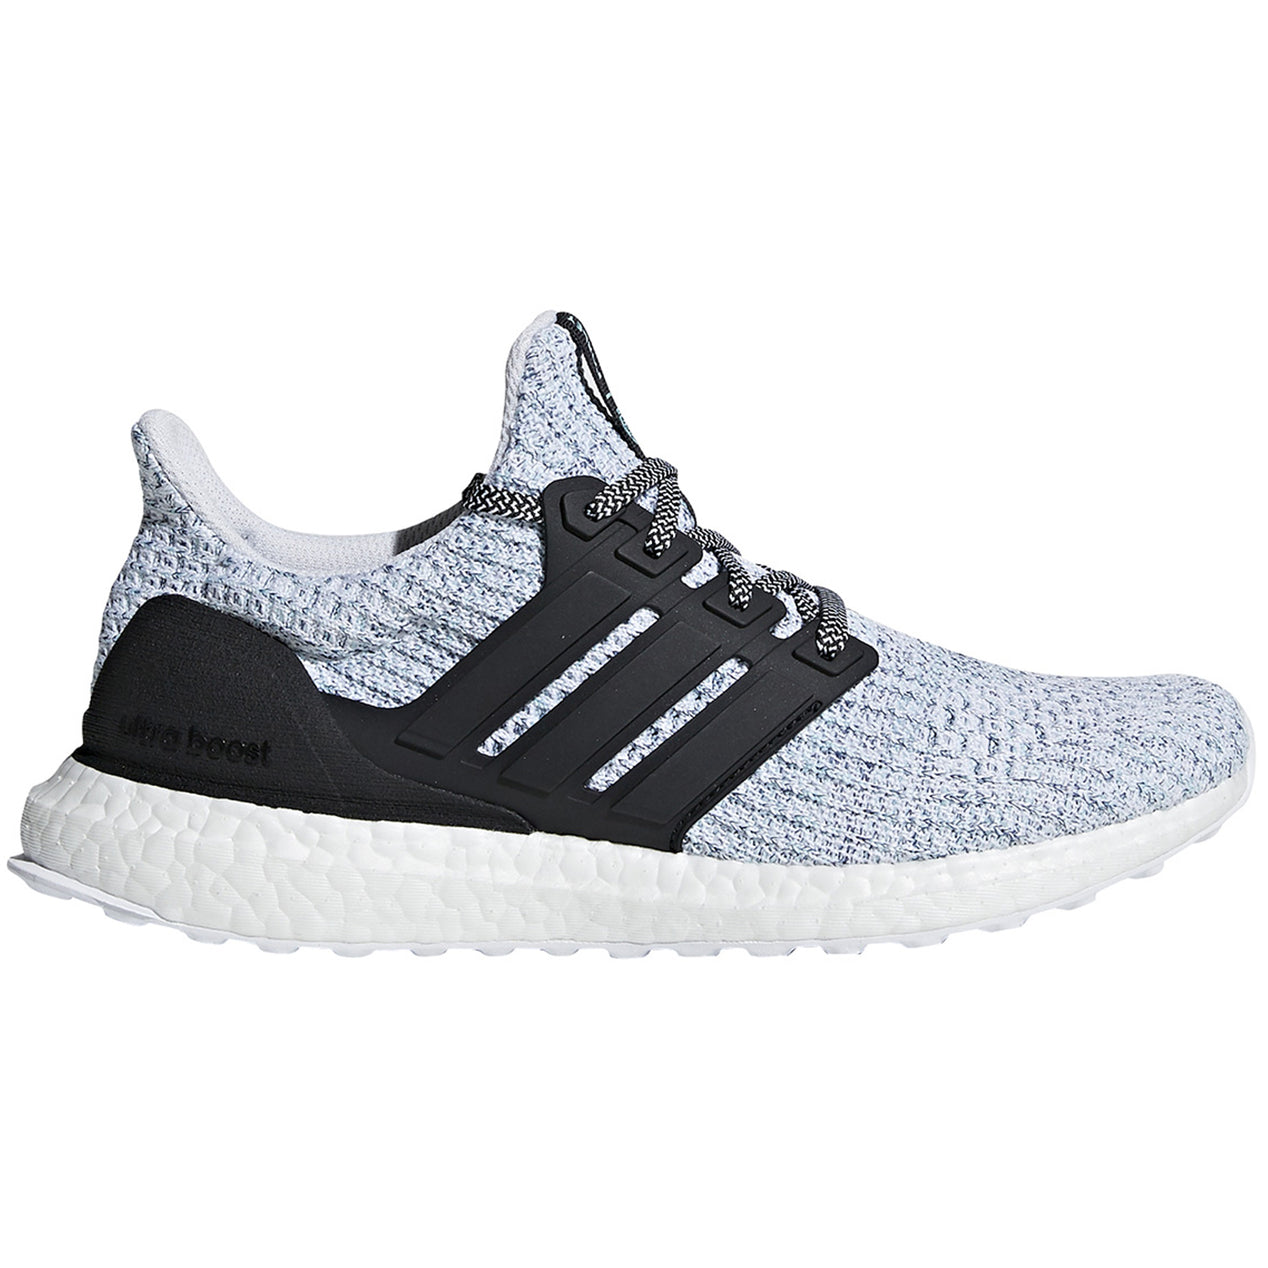 dccab76465728 Adidas Ultraboost Parley Running Shoes - Women s